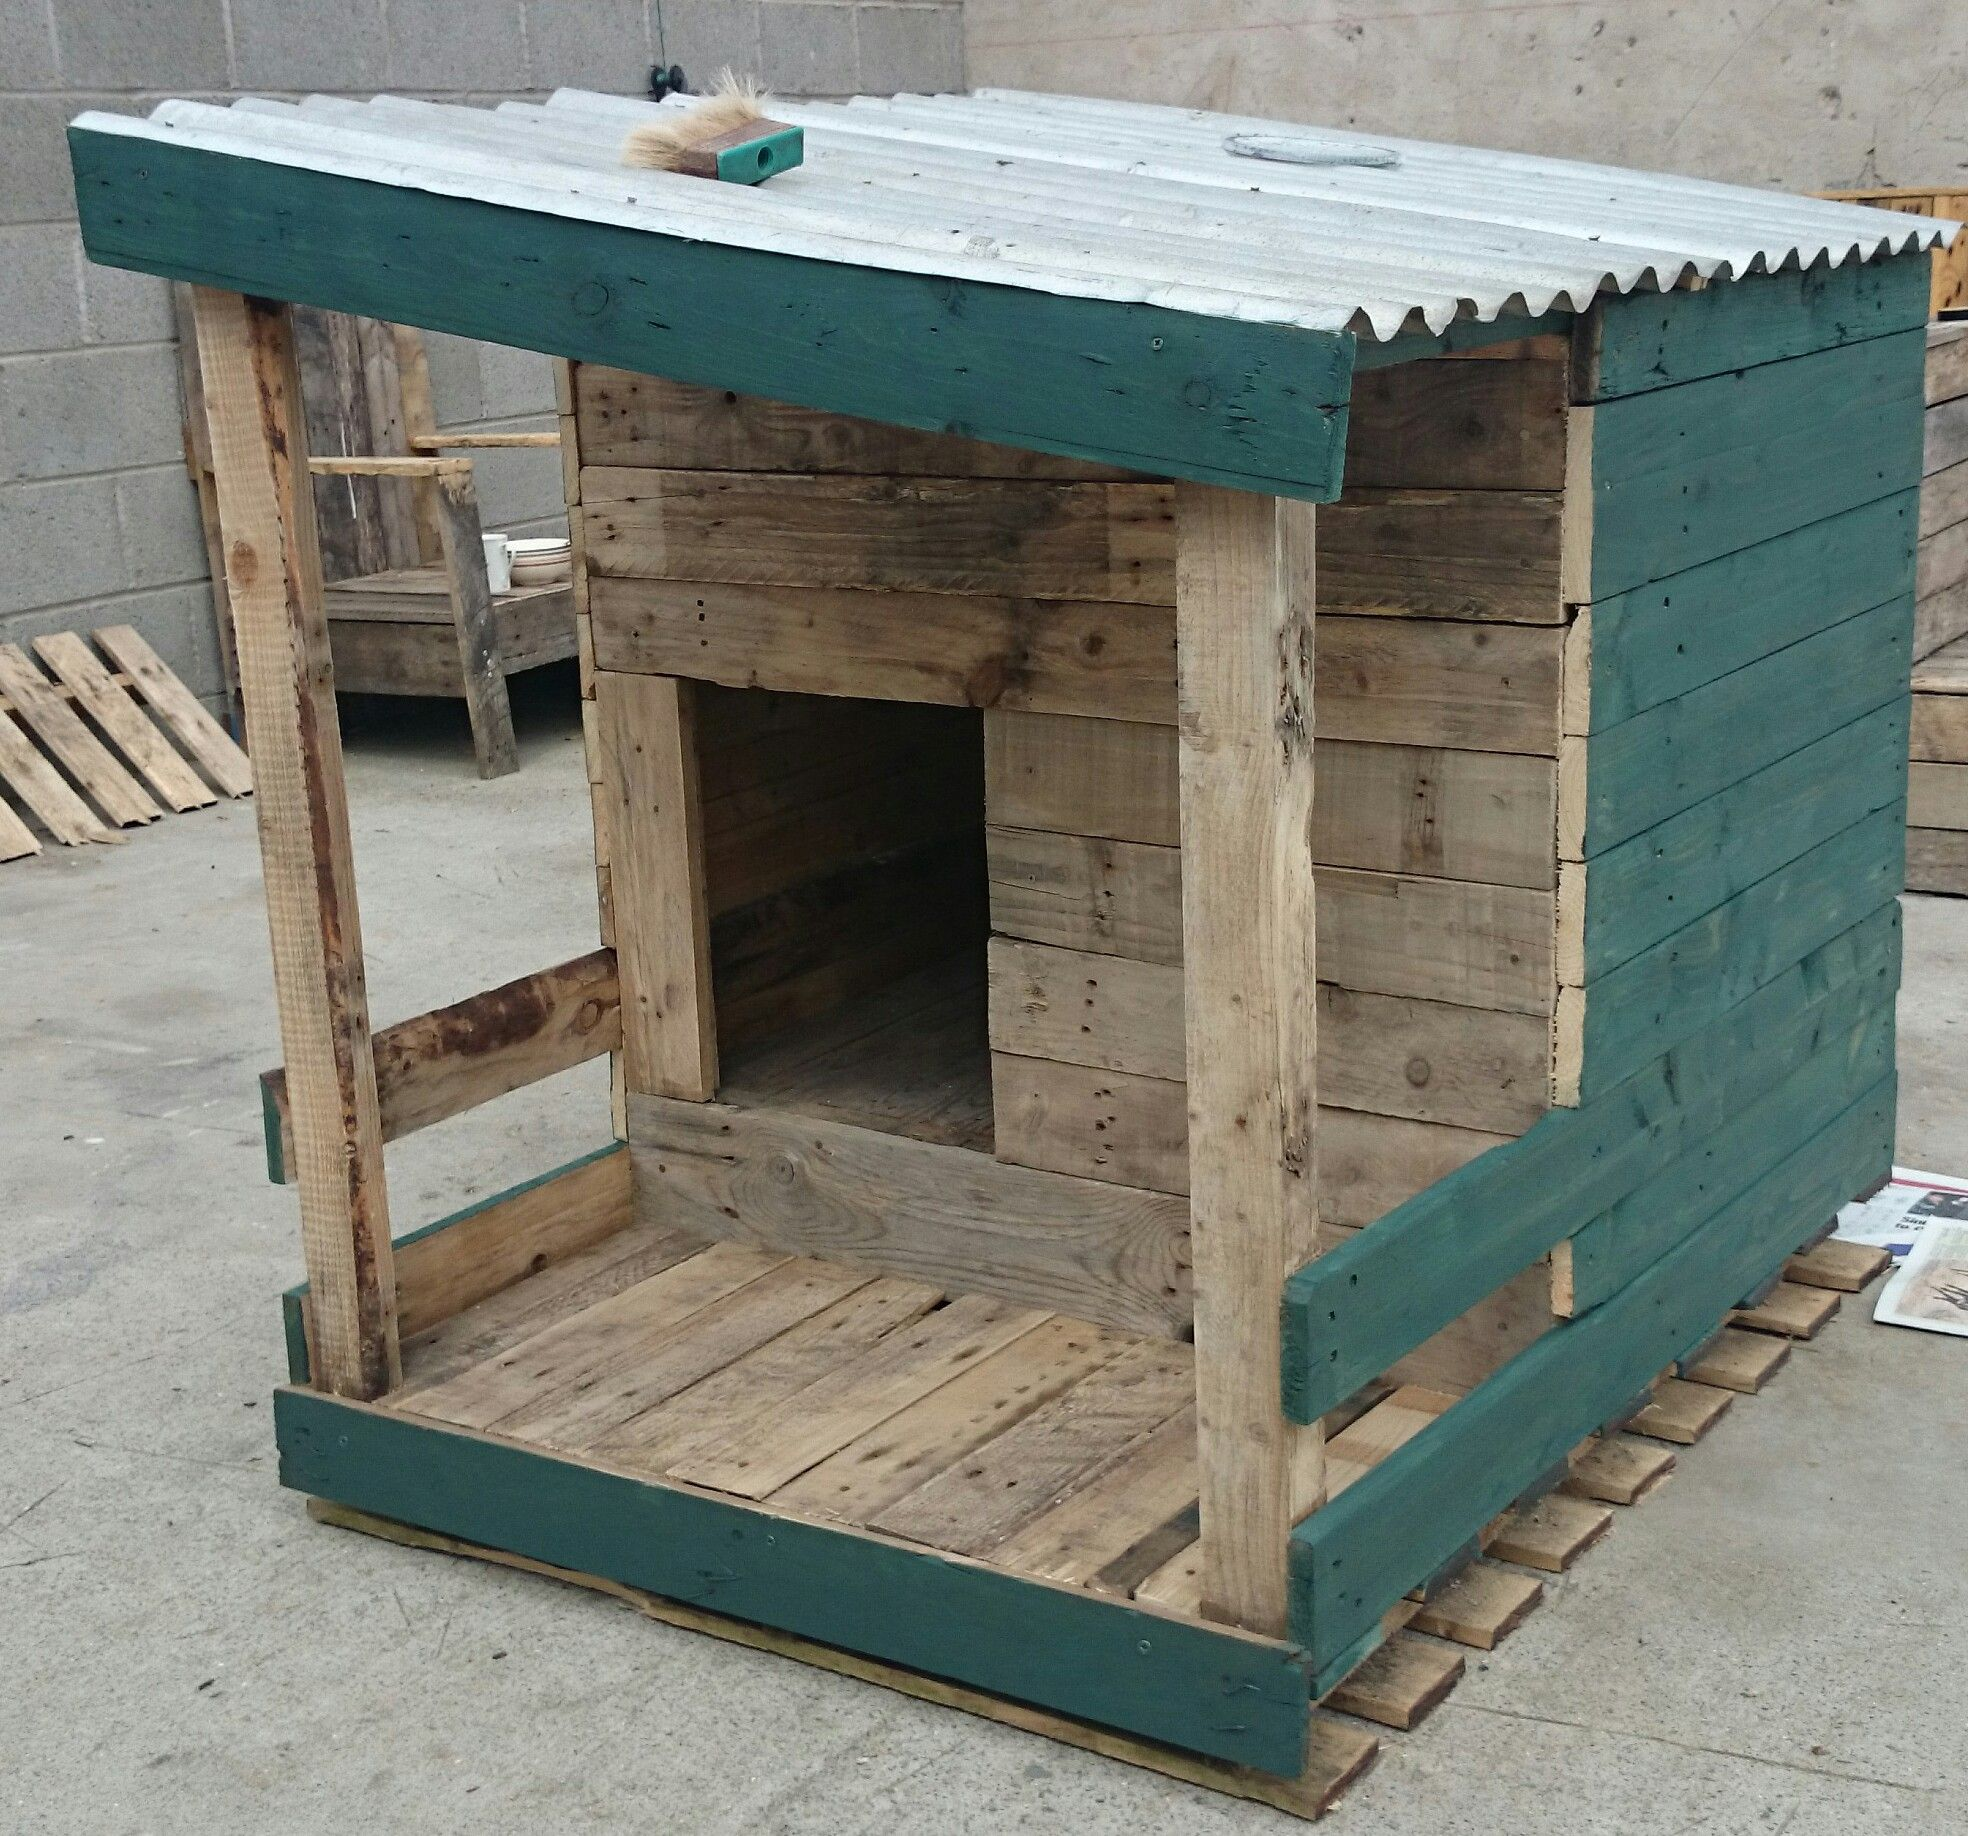 Wood Pallet House Pallet Dog House Build Your Own O Pallet Ideas Dog Houses